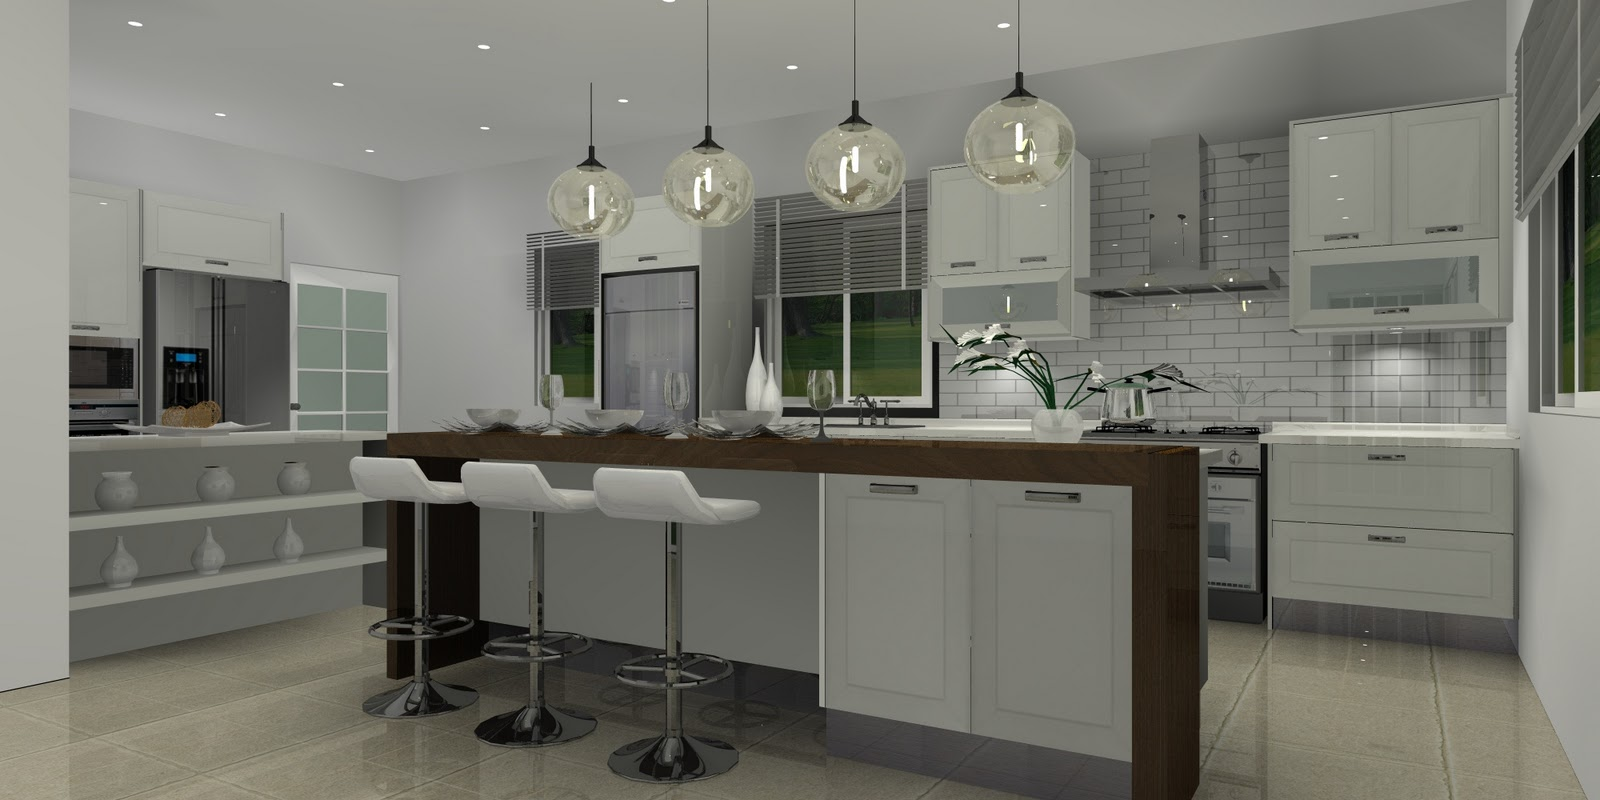 Meridian Design Kitchen Cabinet And Interior Design Blog Malaysia A Modern Kitchen